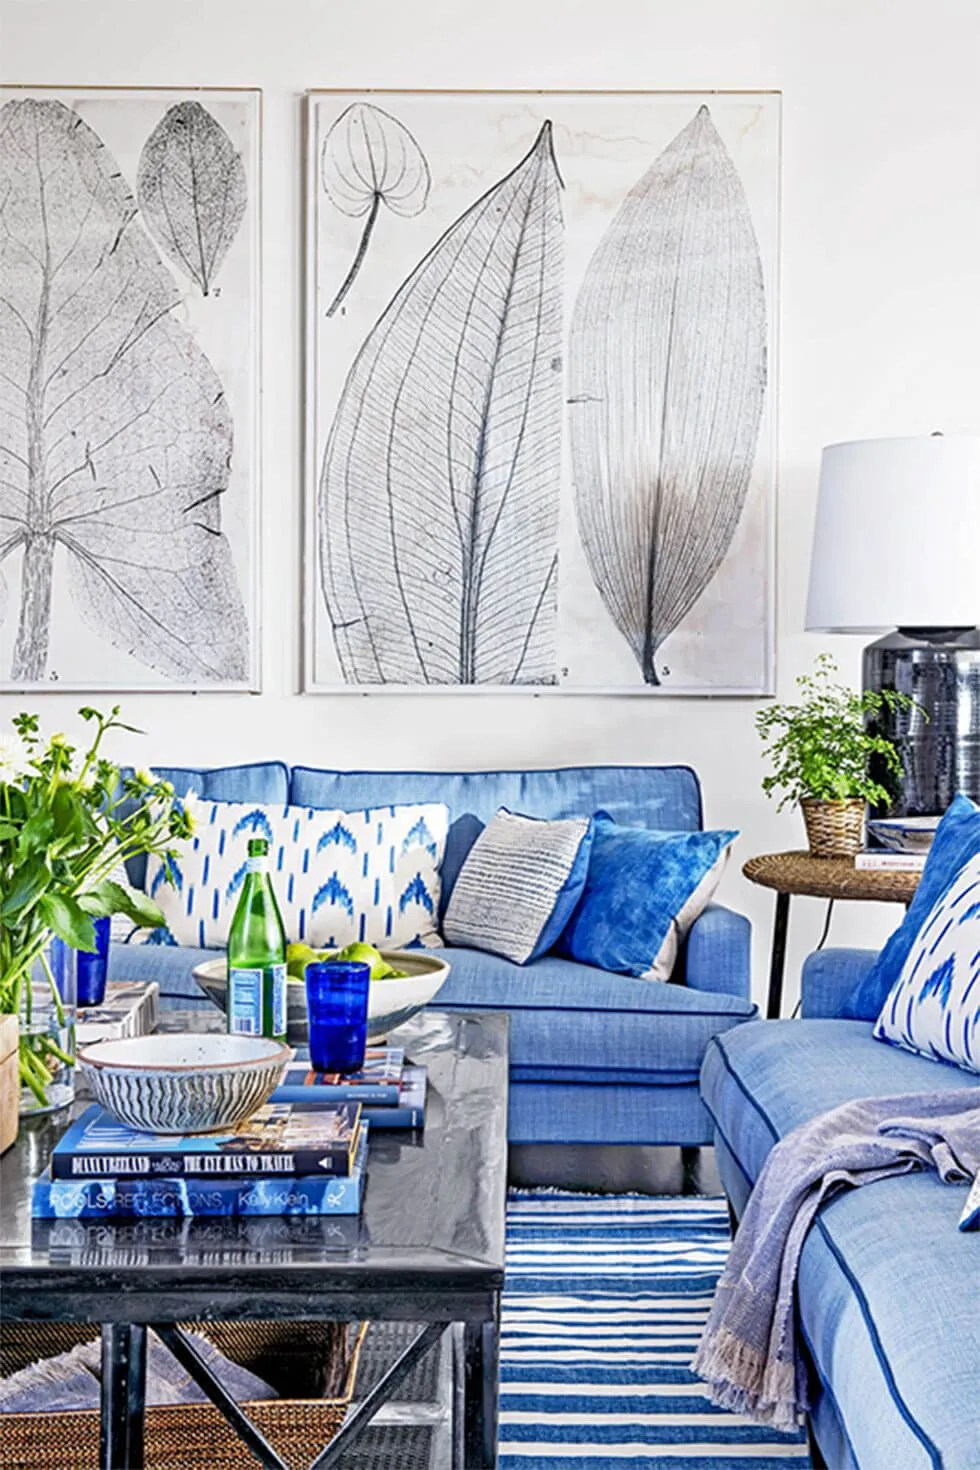 8 Cool Ideas For Blue Living Room Ideas From Tranquil To Vibrant Furniture Choice